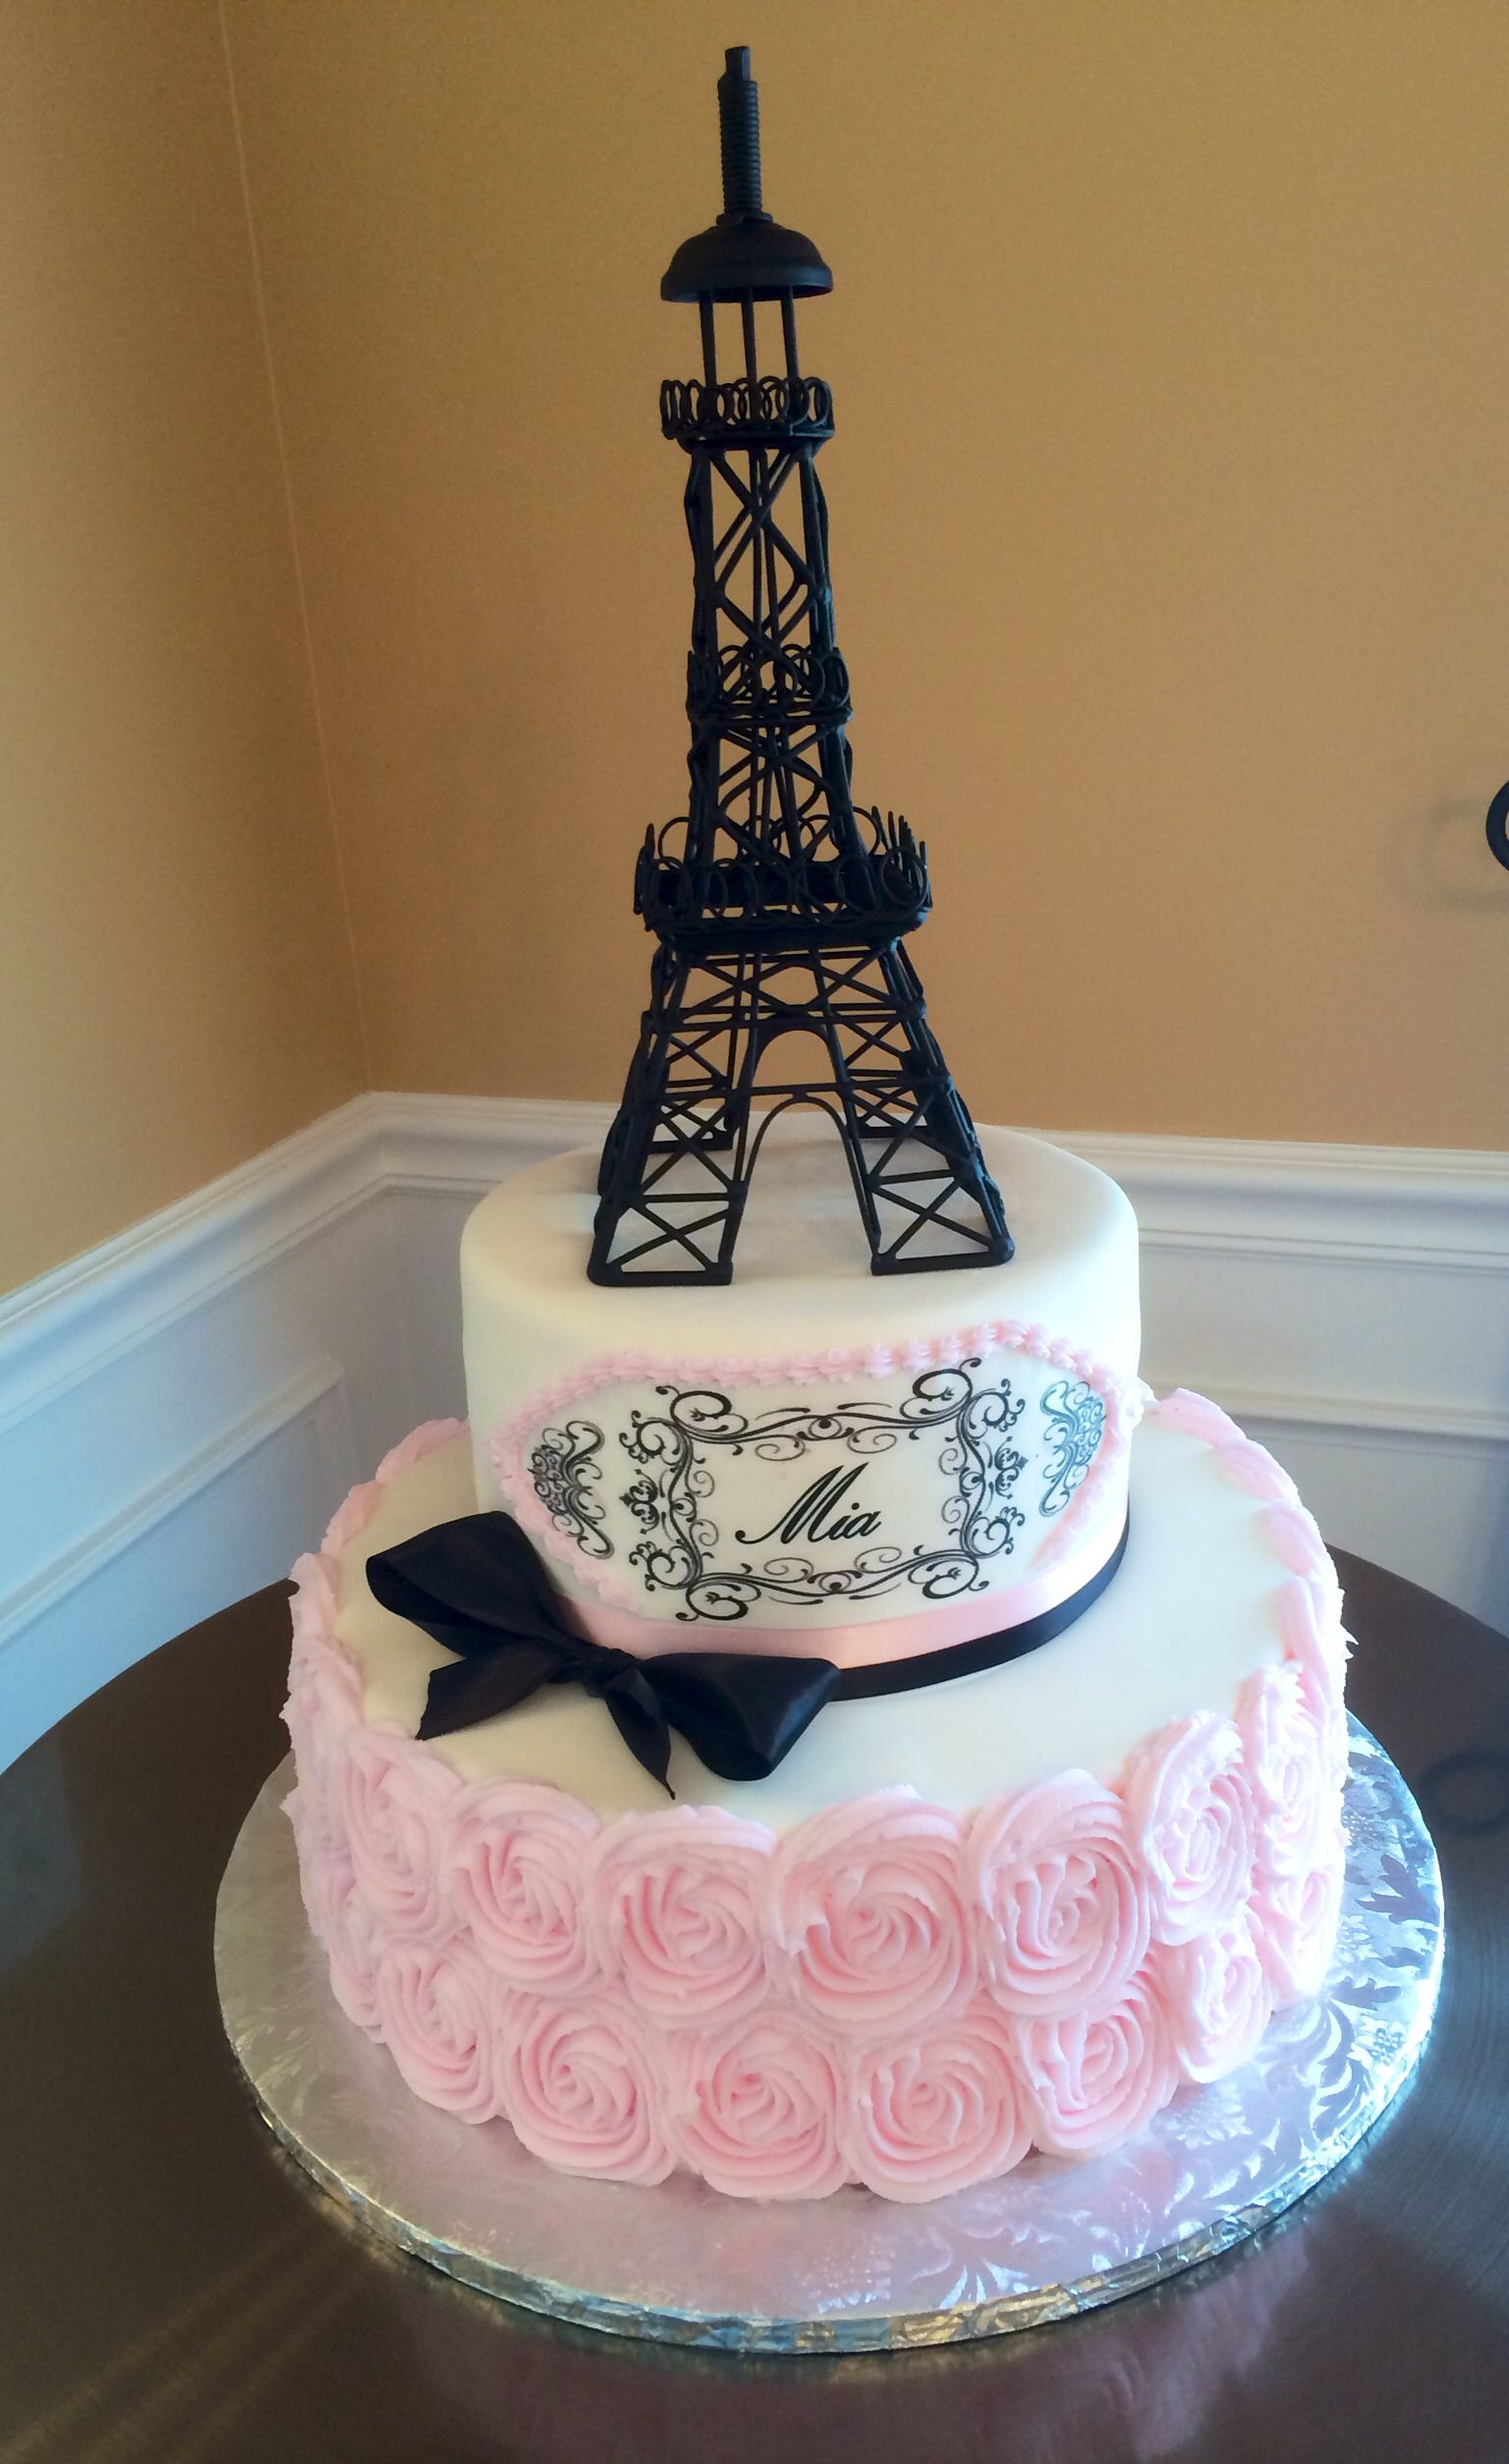 Sweet 16 Paris theme cake by Icing on the Cake Cakes